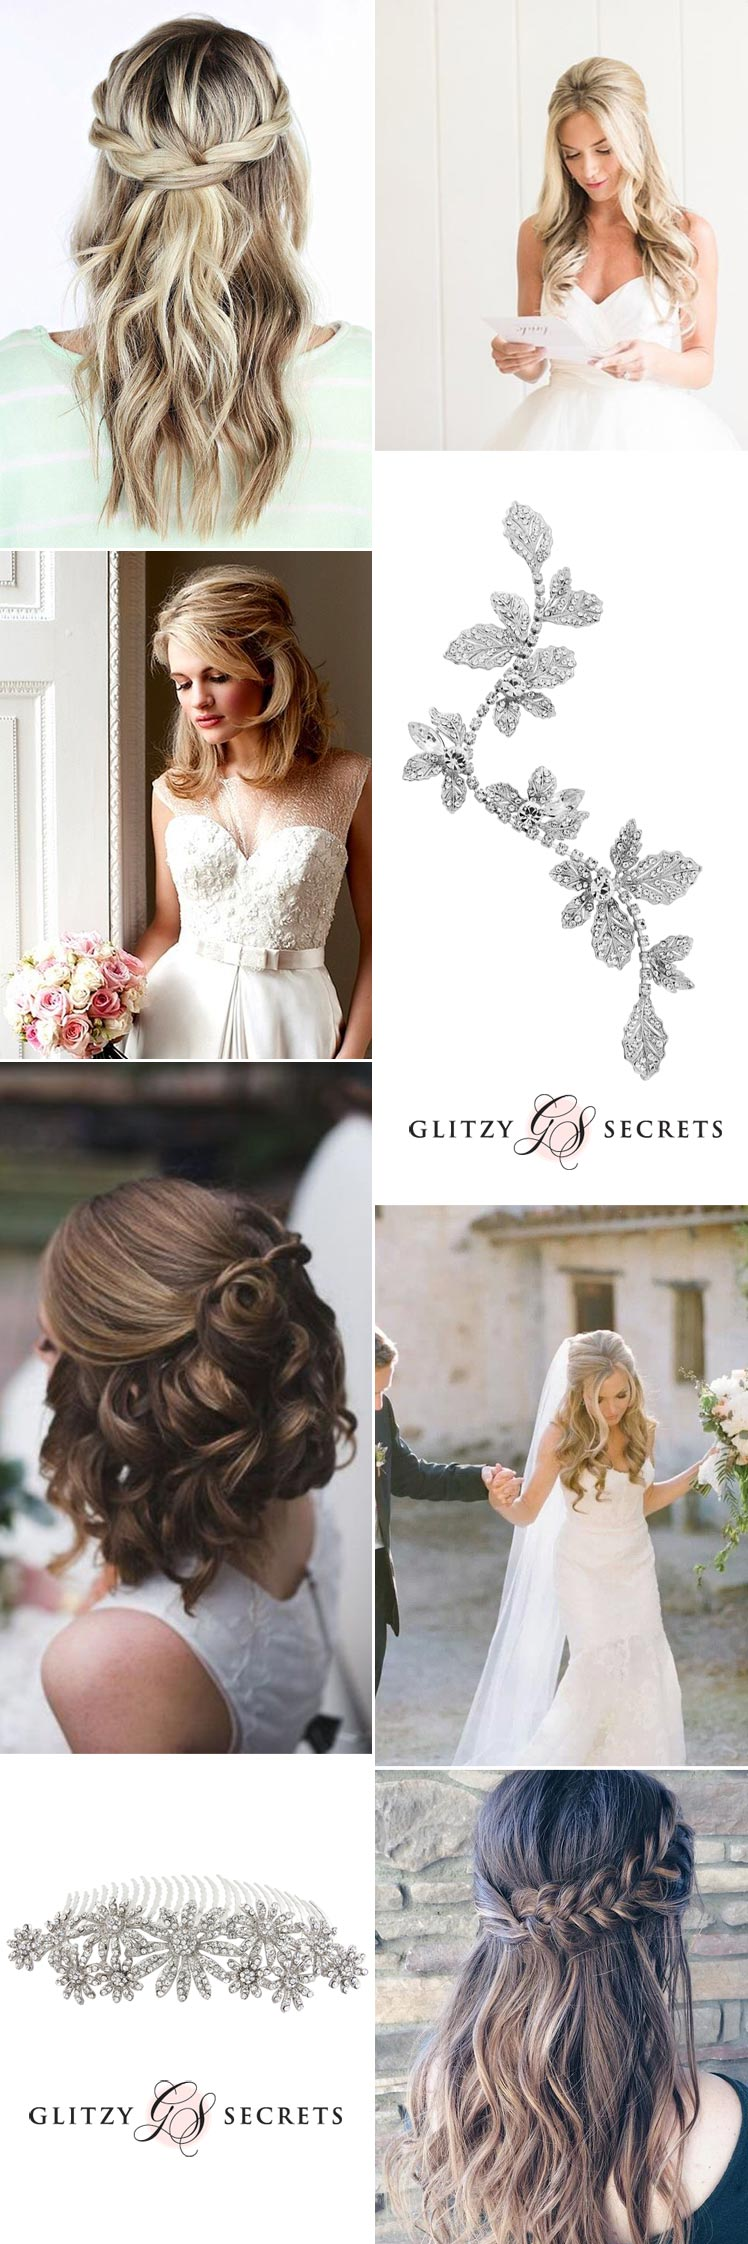 romantic half up dos the perfect bridal hairstyle